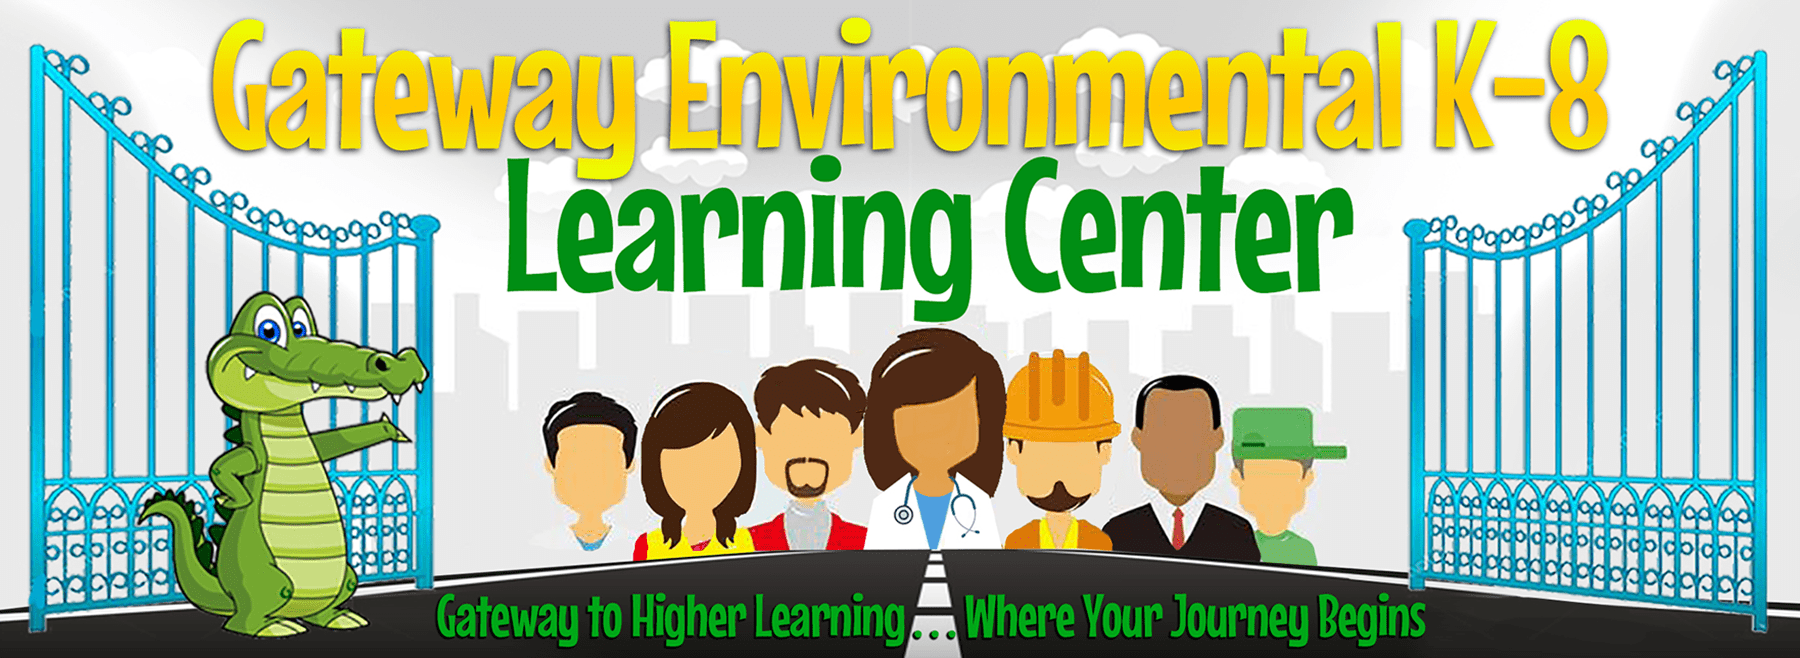 Gateway Environmental K-8